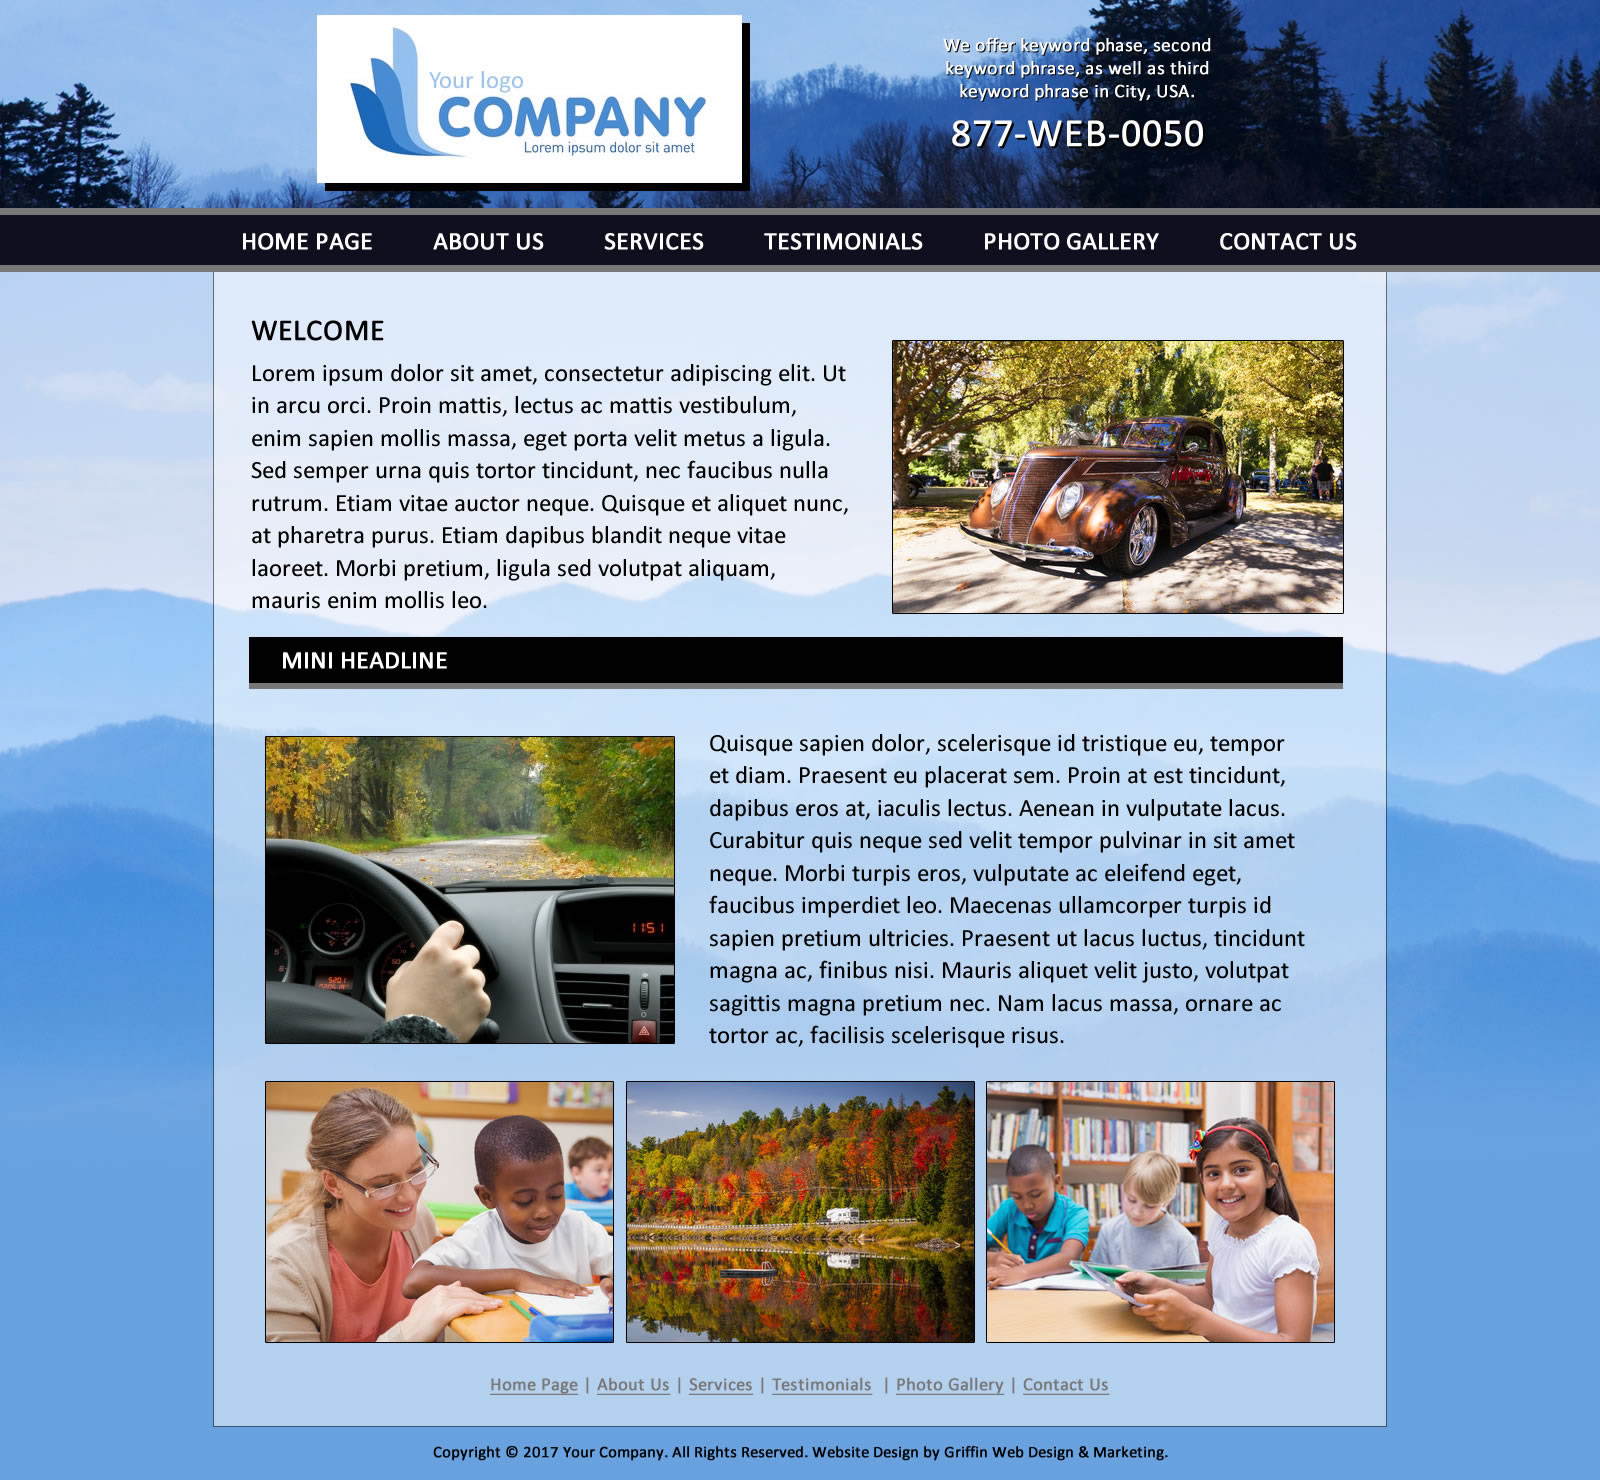 Griffin Web Design LLC Custom Web Design Marketing Atlanta - Template based web design